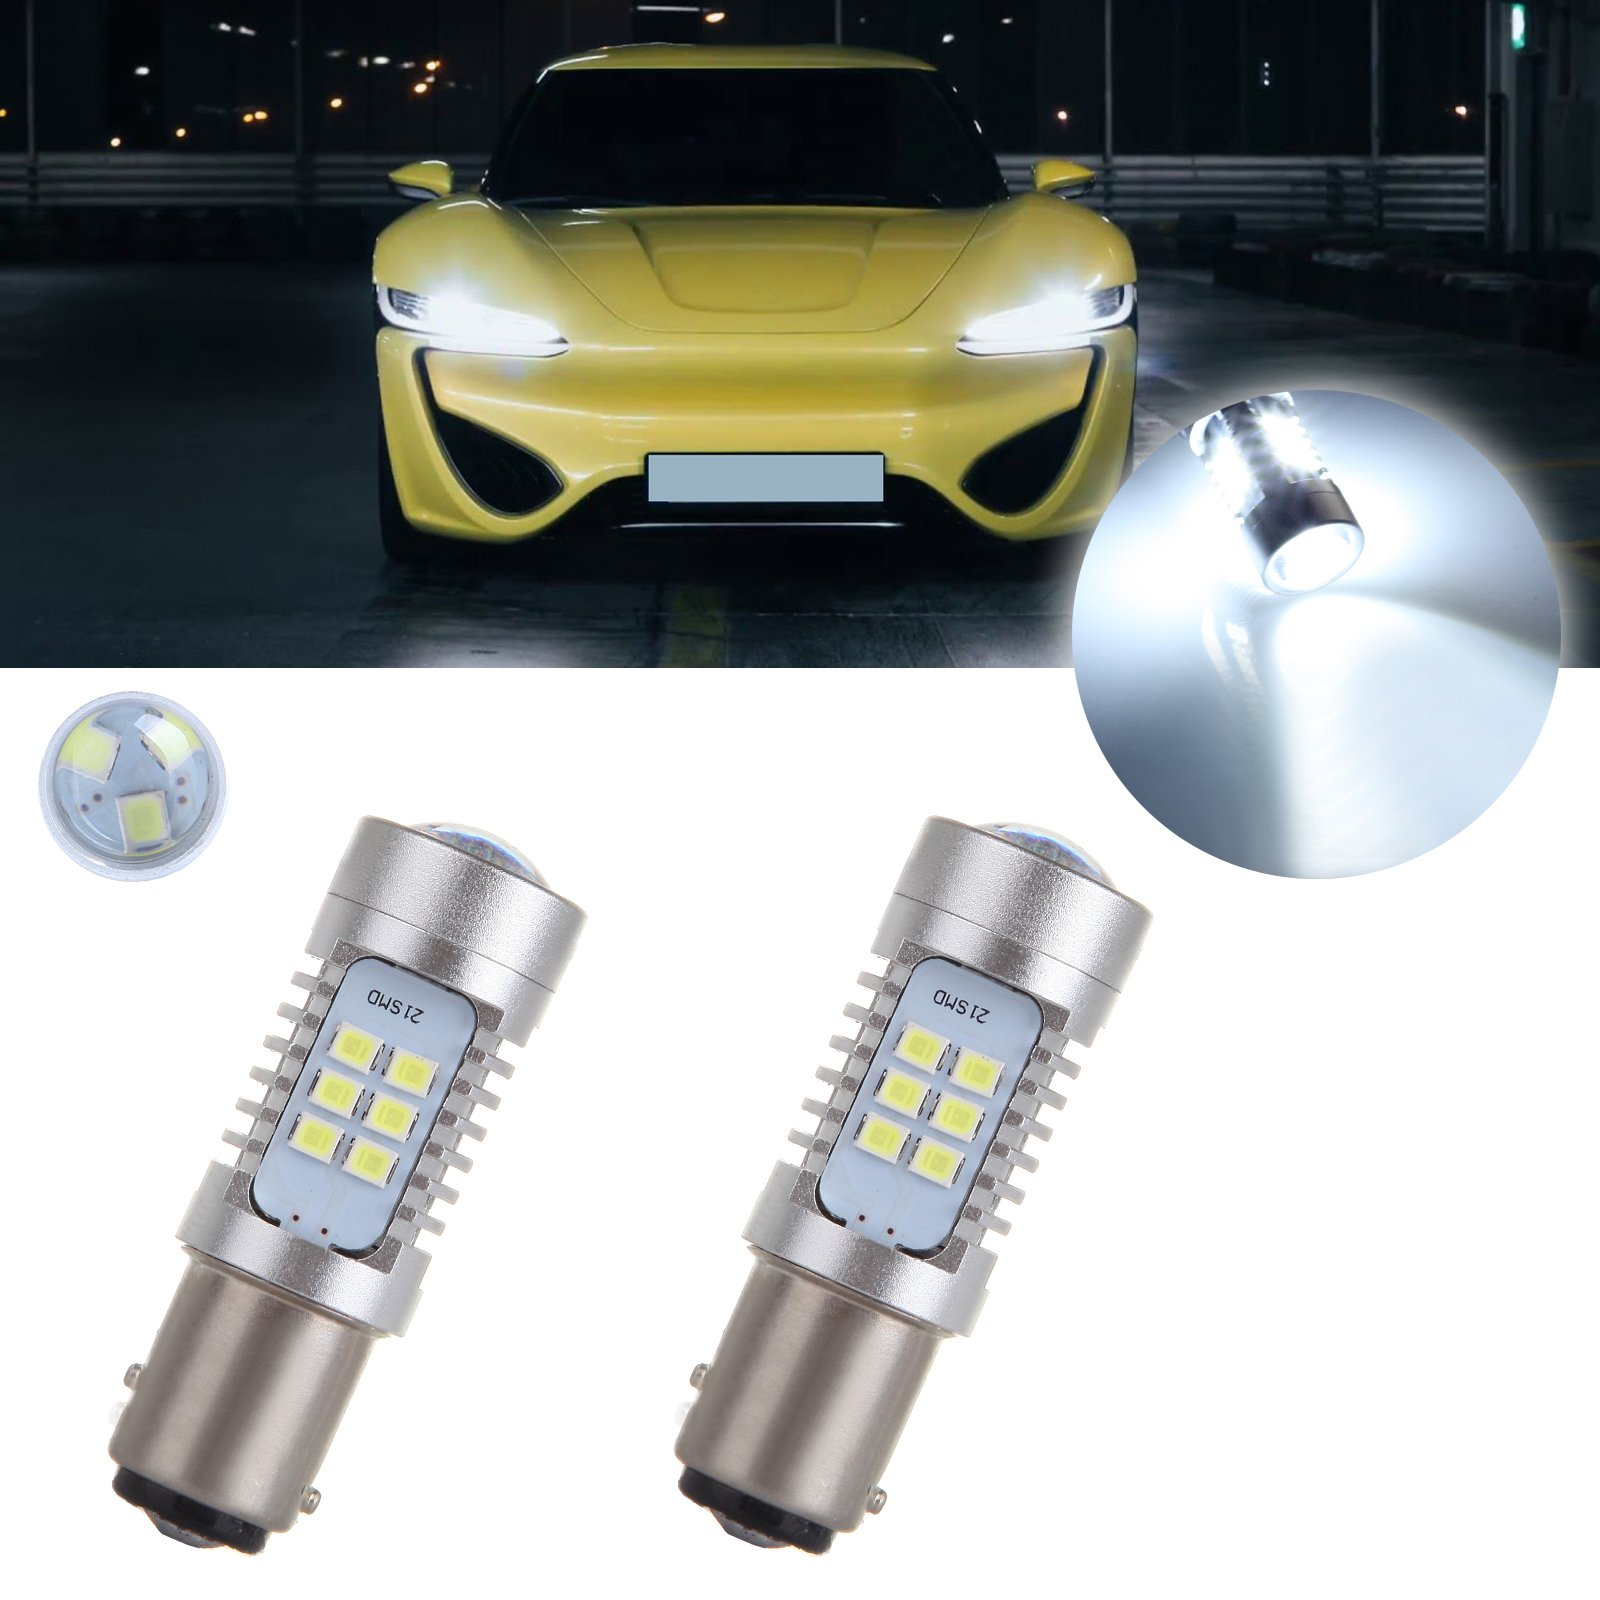 cciyu 2Pack High Power 30SMD 1200 Lumens Super Bright White 1157 LED Bulbs Replacement fit for Back Up Reverse Lights